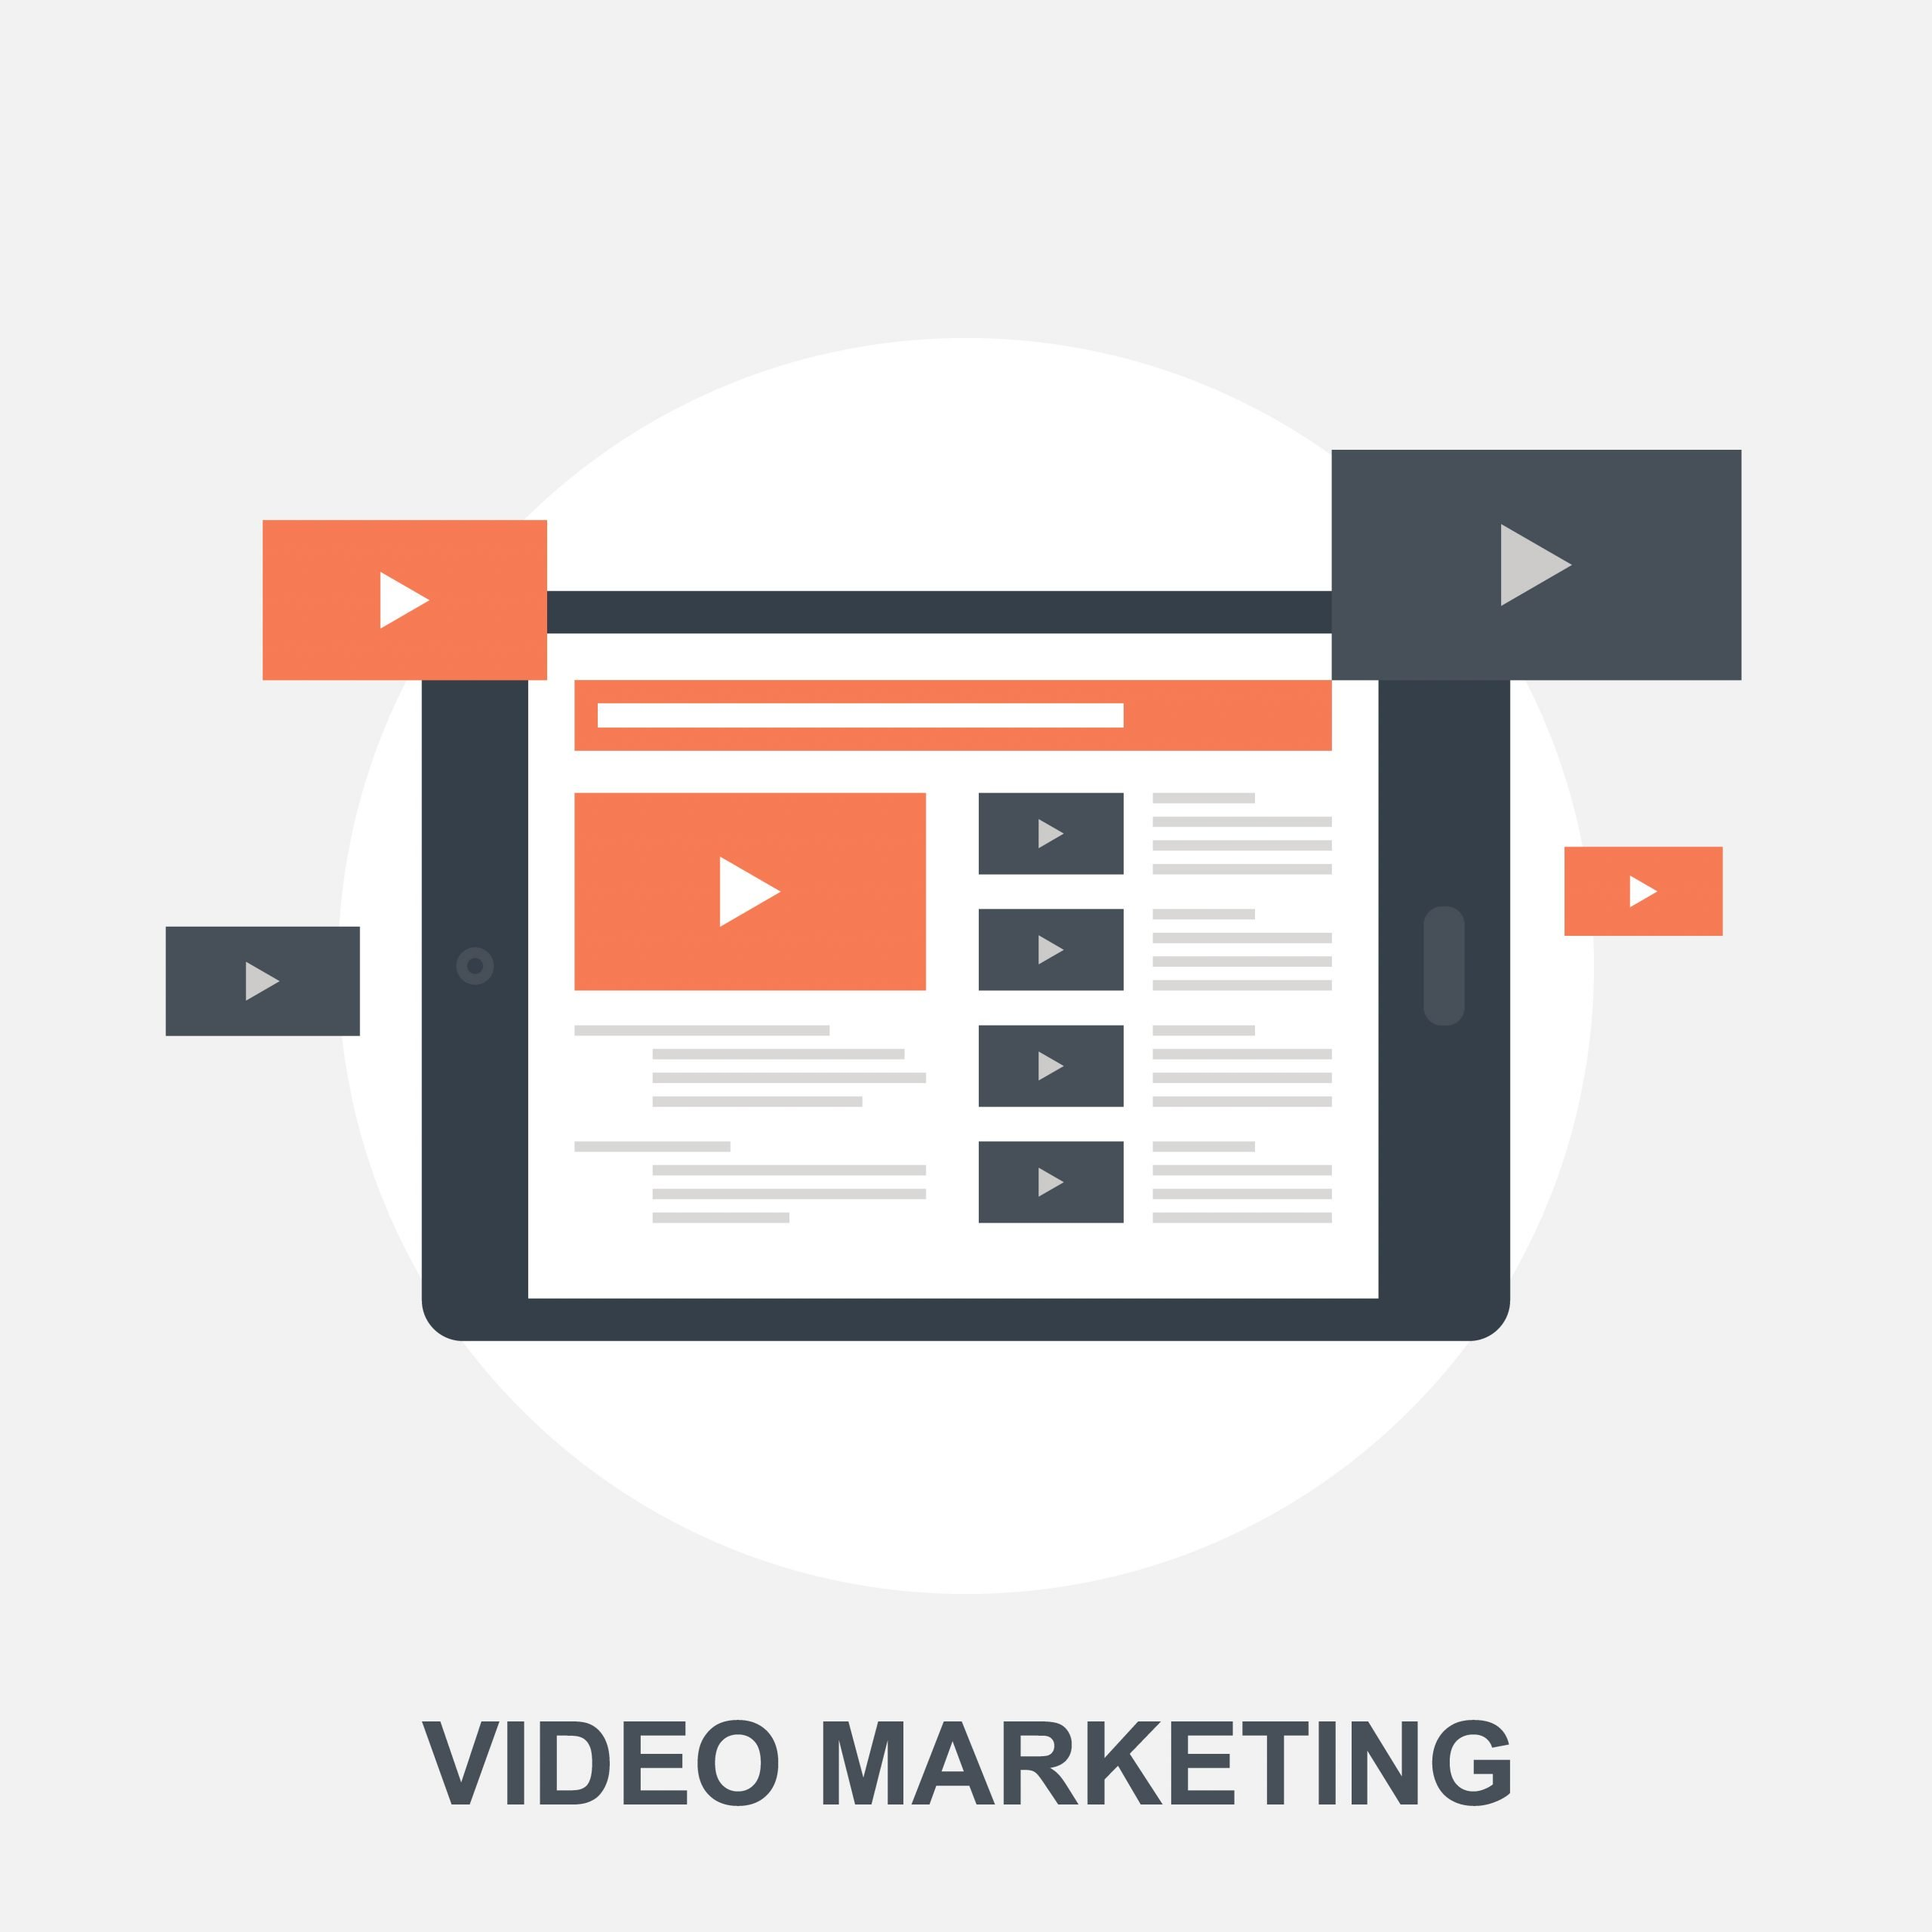 Make the Most of Video Advertising Through Mobile